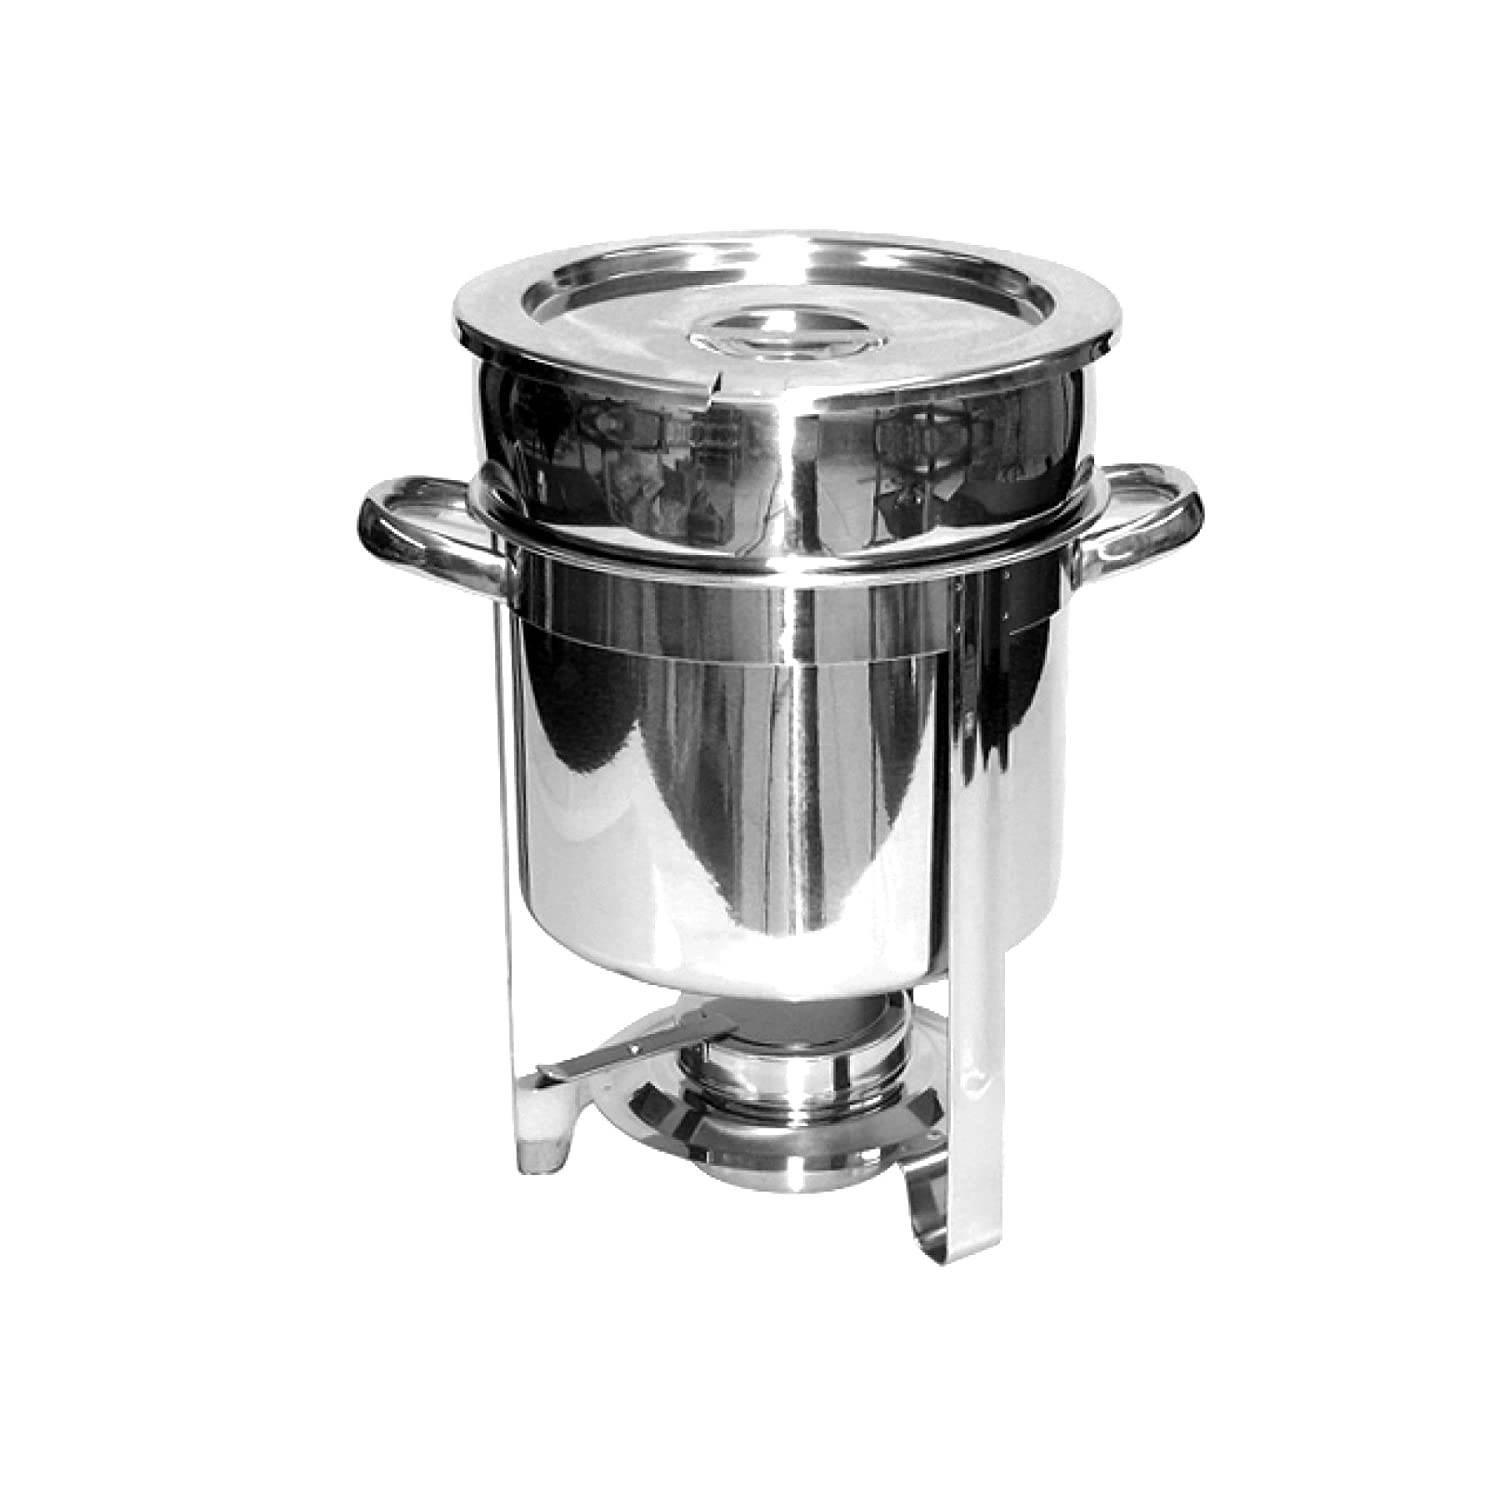 Excellante Stainless Steel 7-Quart Marmite Chafer Thunder Group SLRCF8307